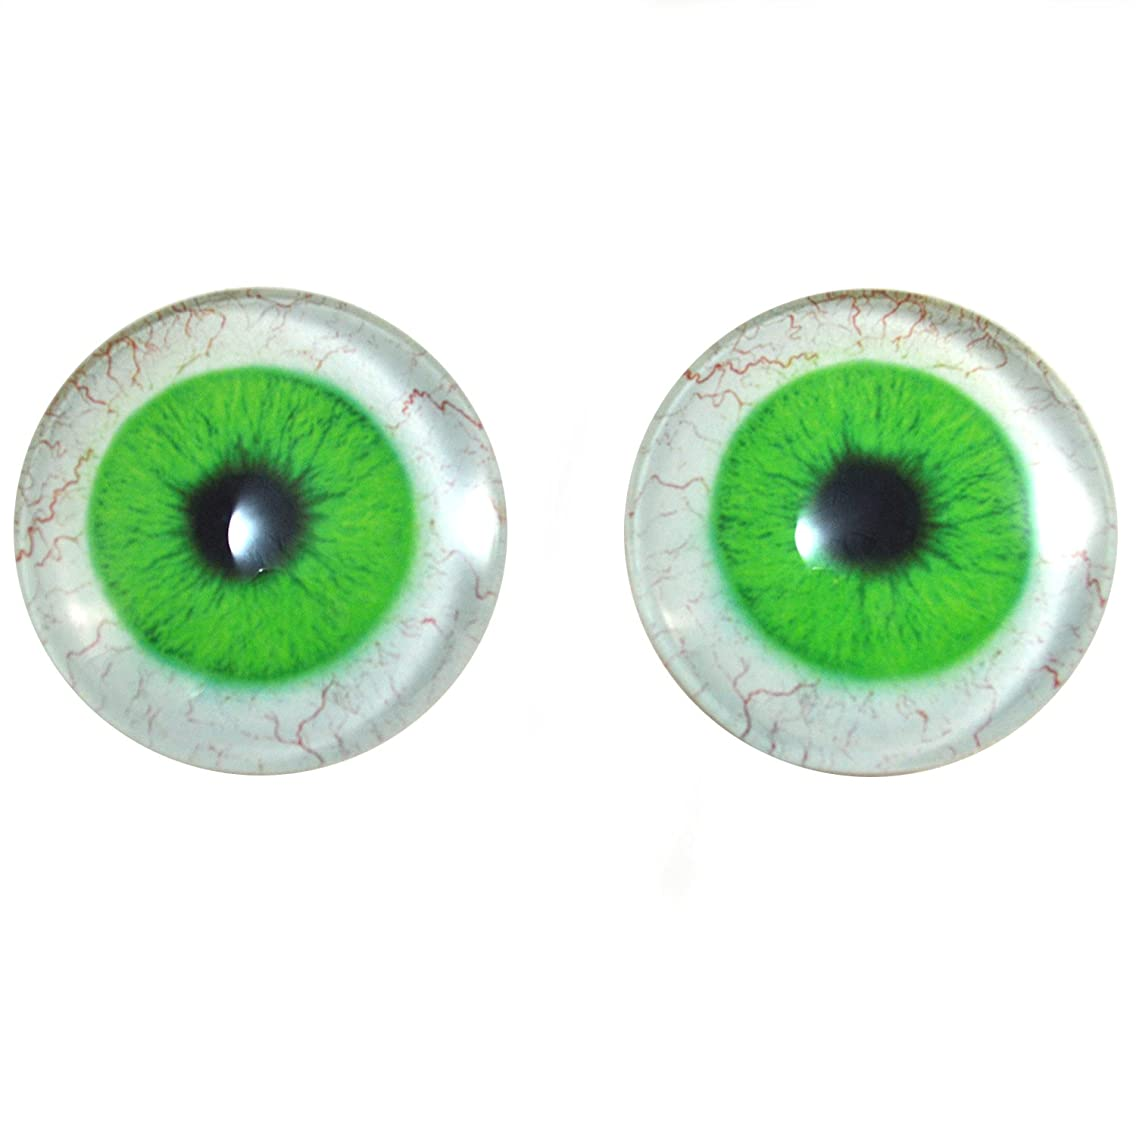 40mm Pair of Bright Green Human Glass Eyes, for Jewelry Making, Dolls, Sculptures, More